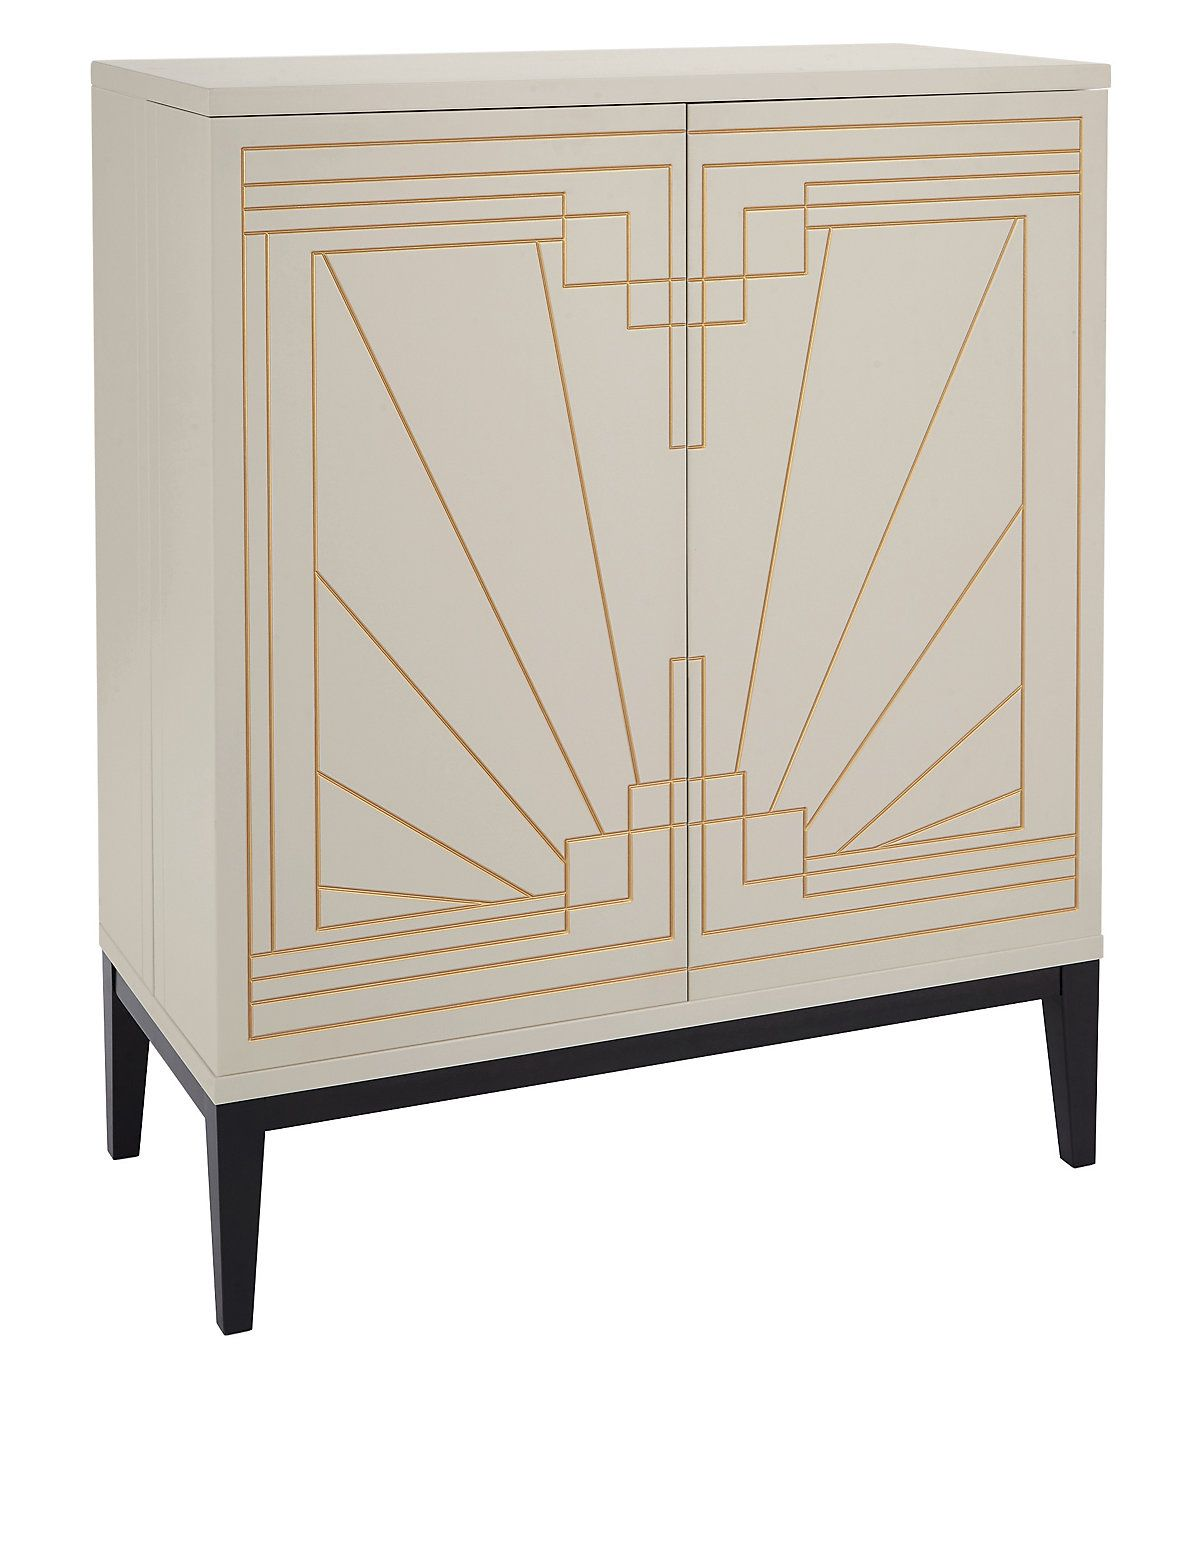 Carraway Drinks Cabinet Furniture Finds In 2019 Drinks